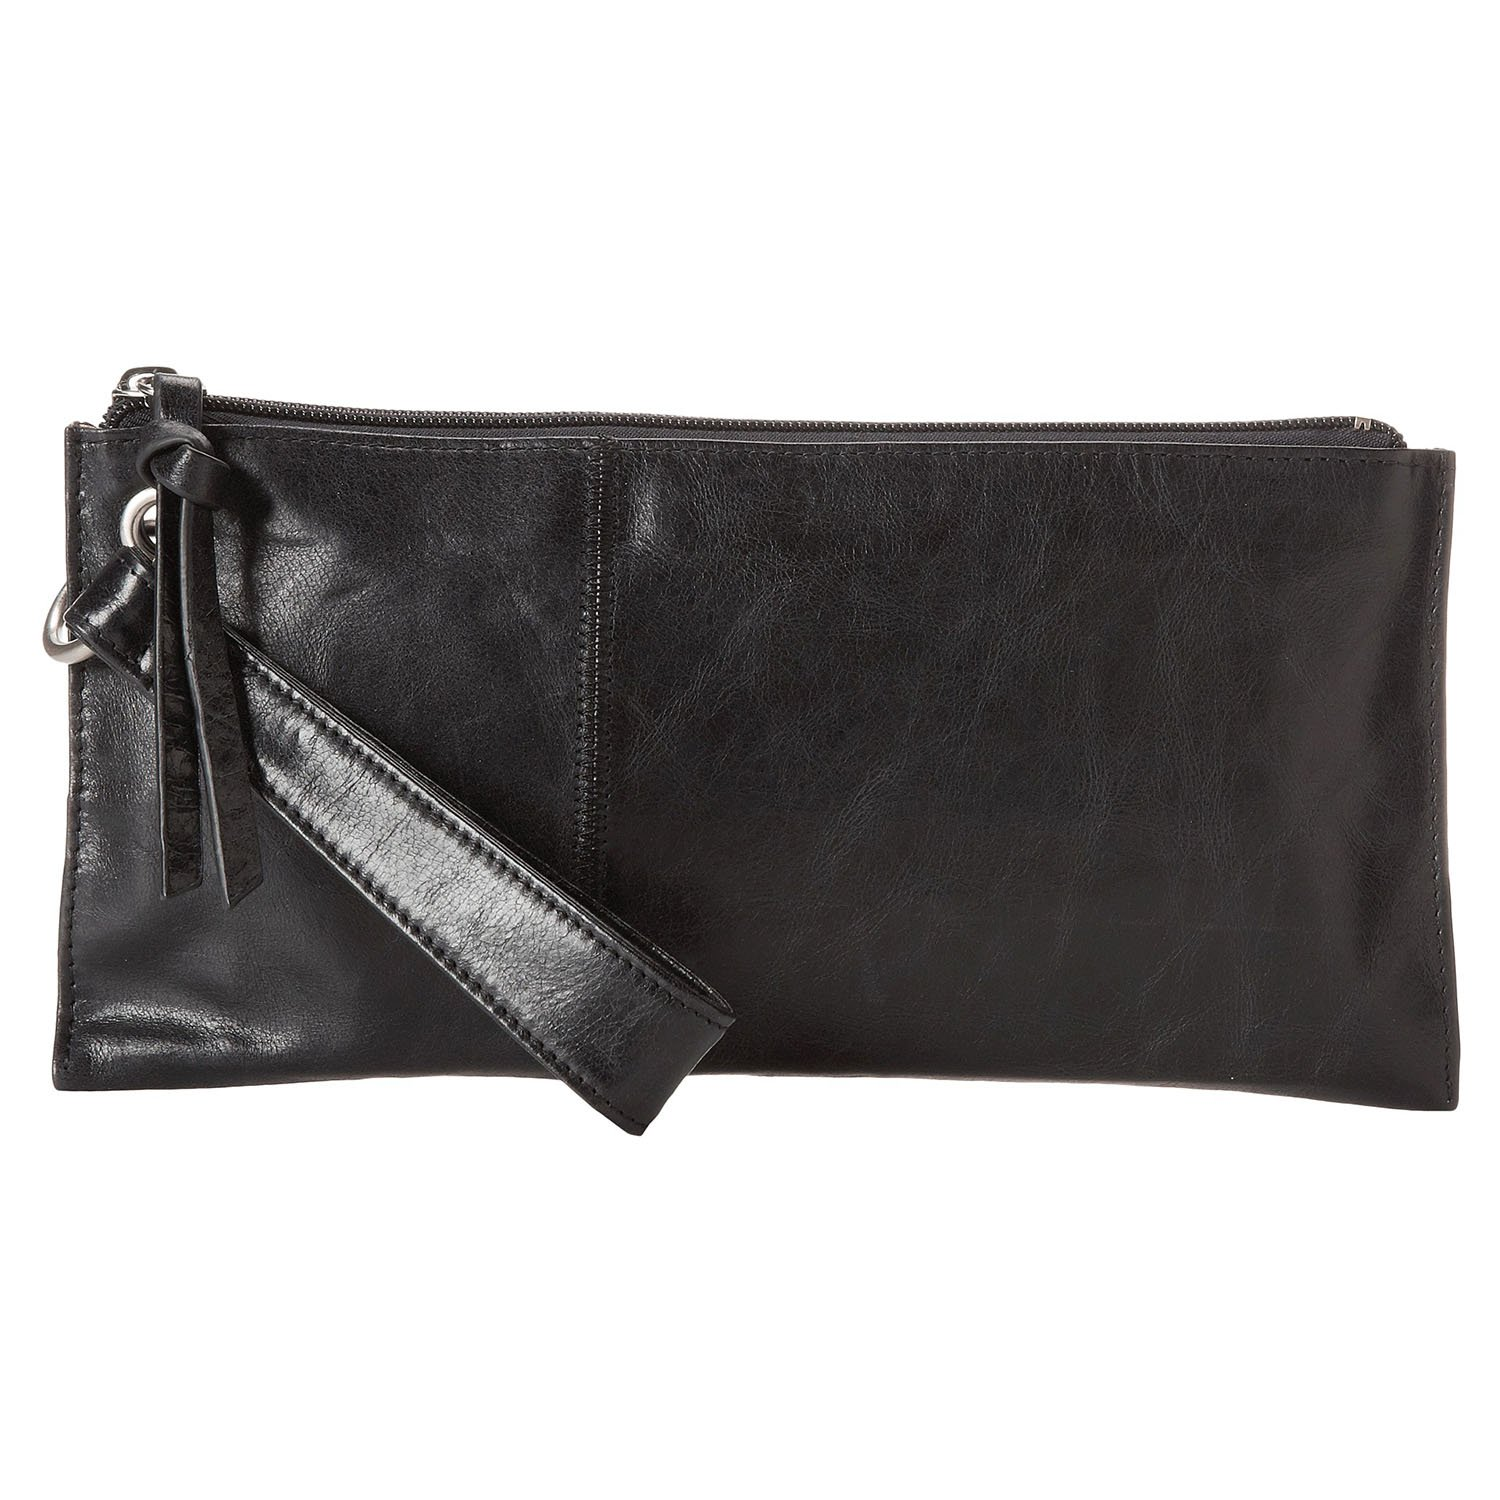 HOBO Vintage Vida Clutch,Black,One Size by HOBO